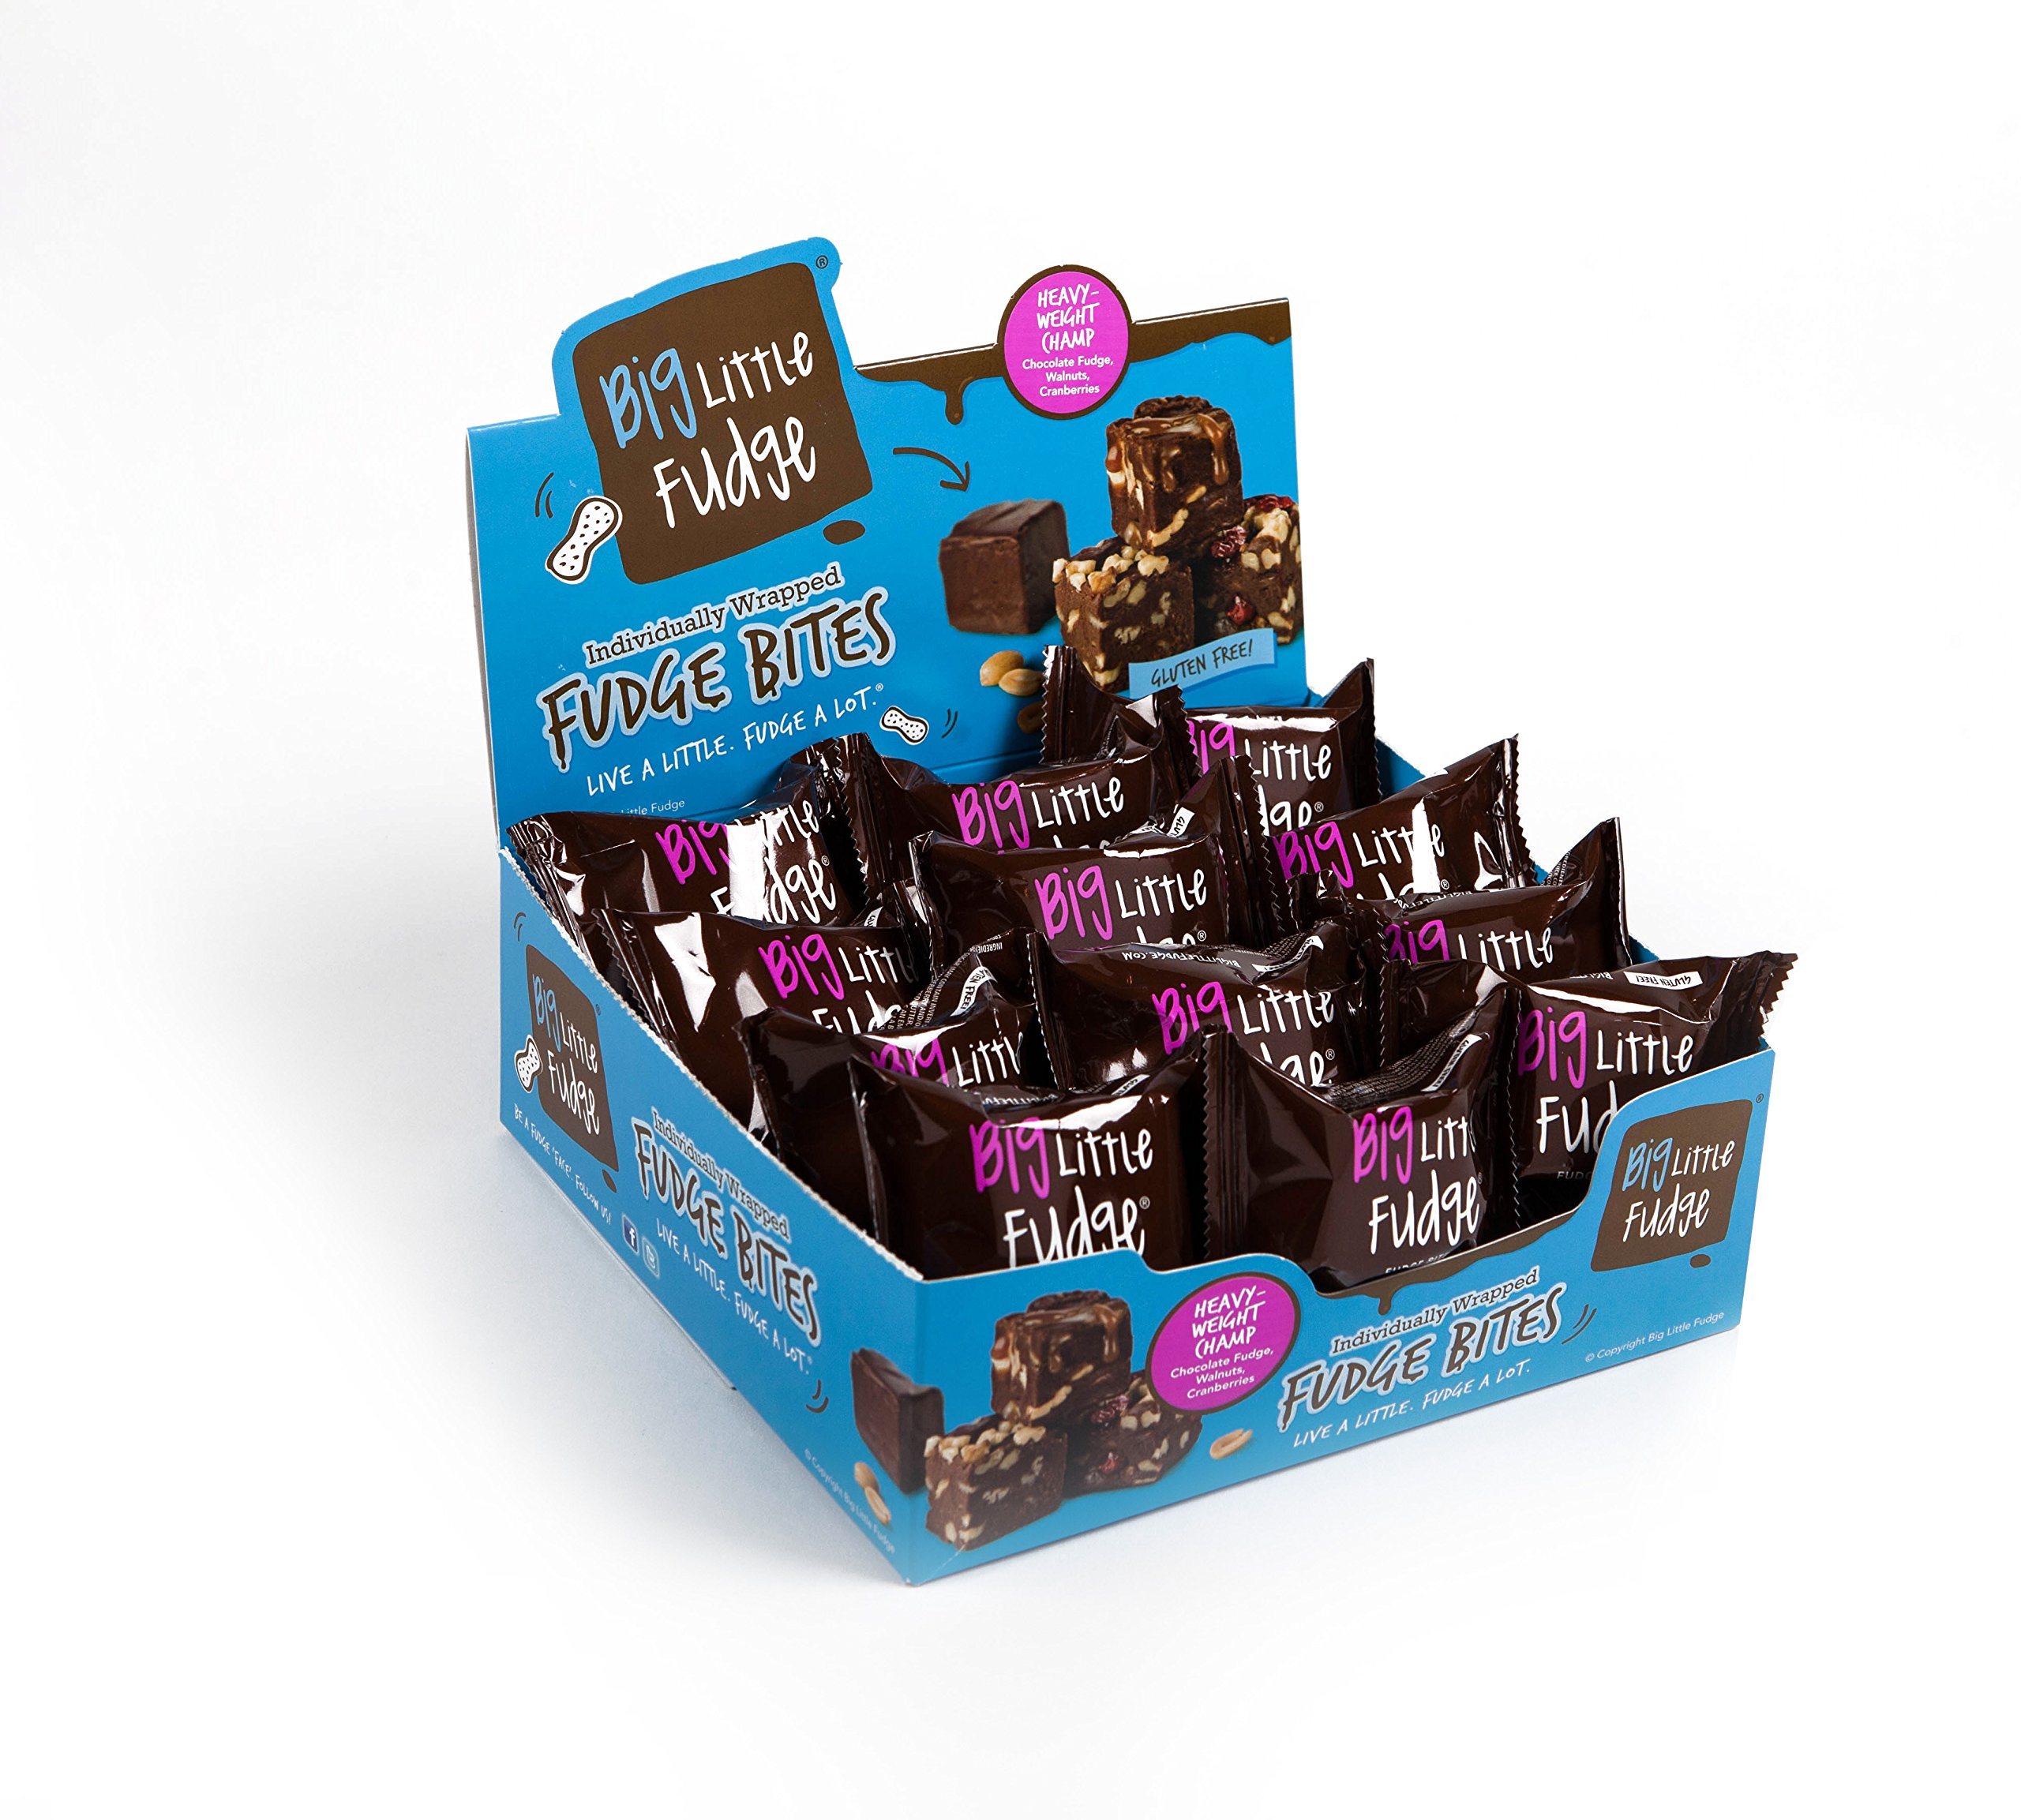 Big Little Fudge - Heavyweight Champ - Chocolate, Cranberry, Walnut Fudge - 24 Individually Wrapped 1.6 Ounce Fudge Bites by Big Little Fudge